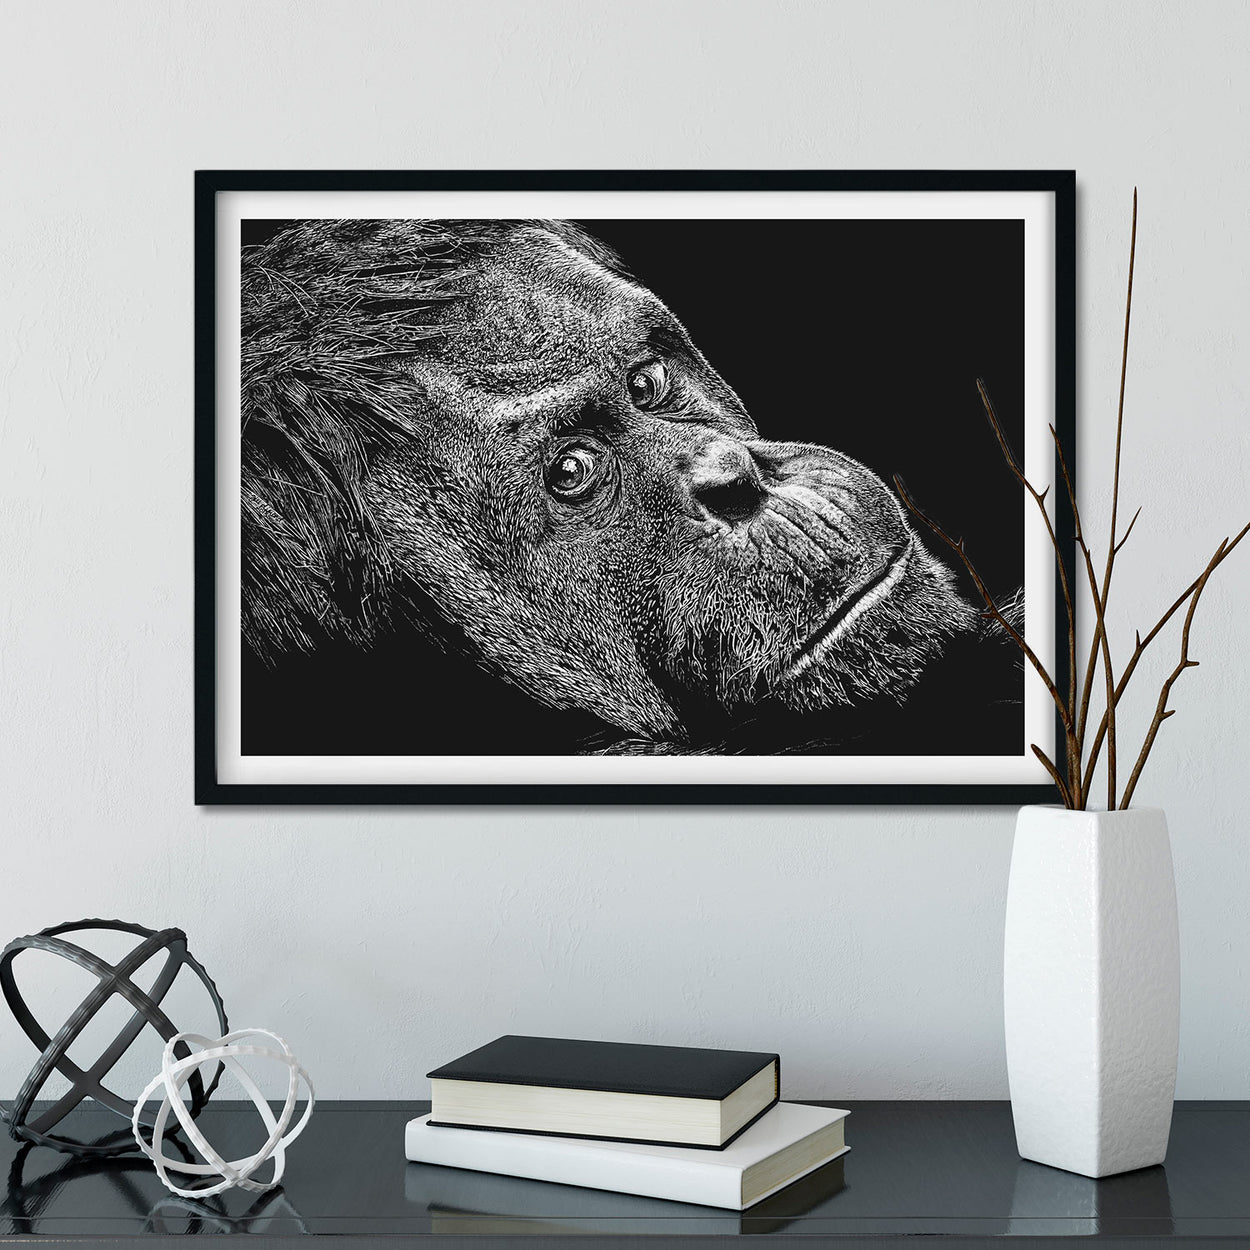 Orangutan Prints Frame - The Thriving Wild